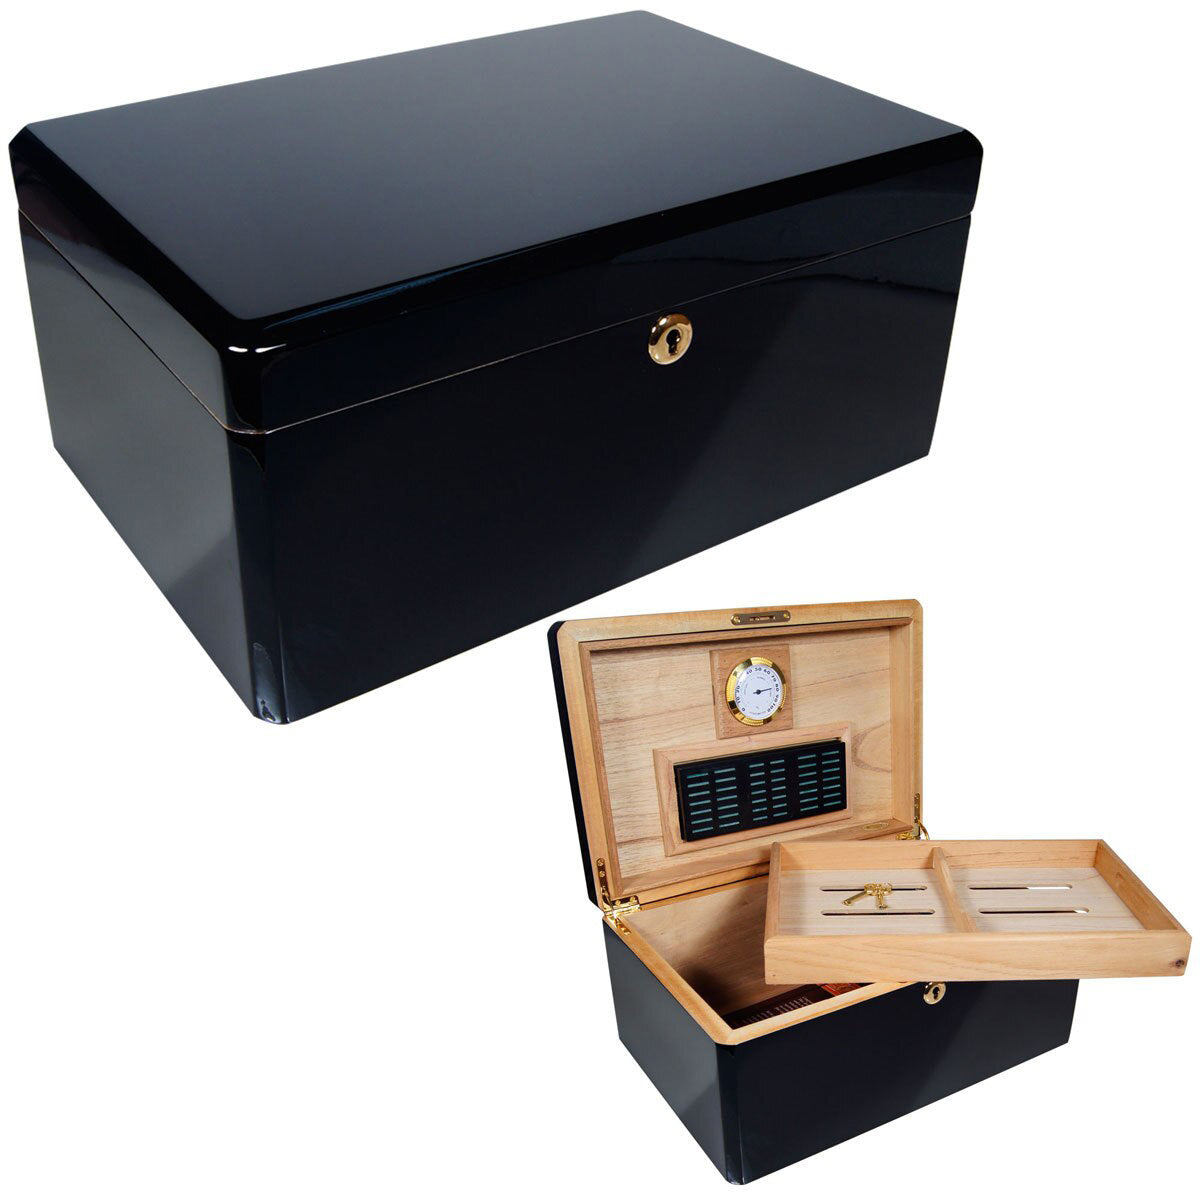 Cuban Crafters Designer COLORES NEGRO Humidors for 100 Cigars